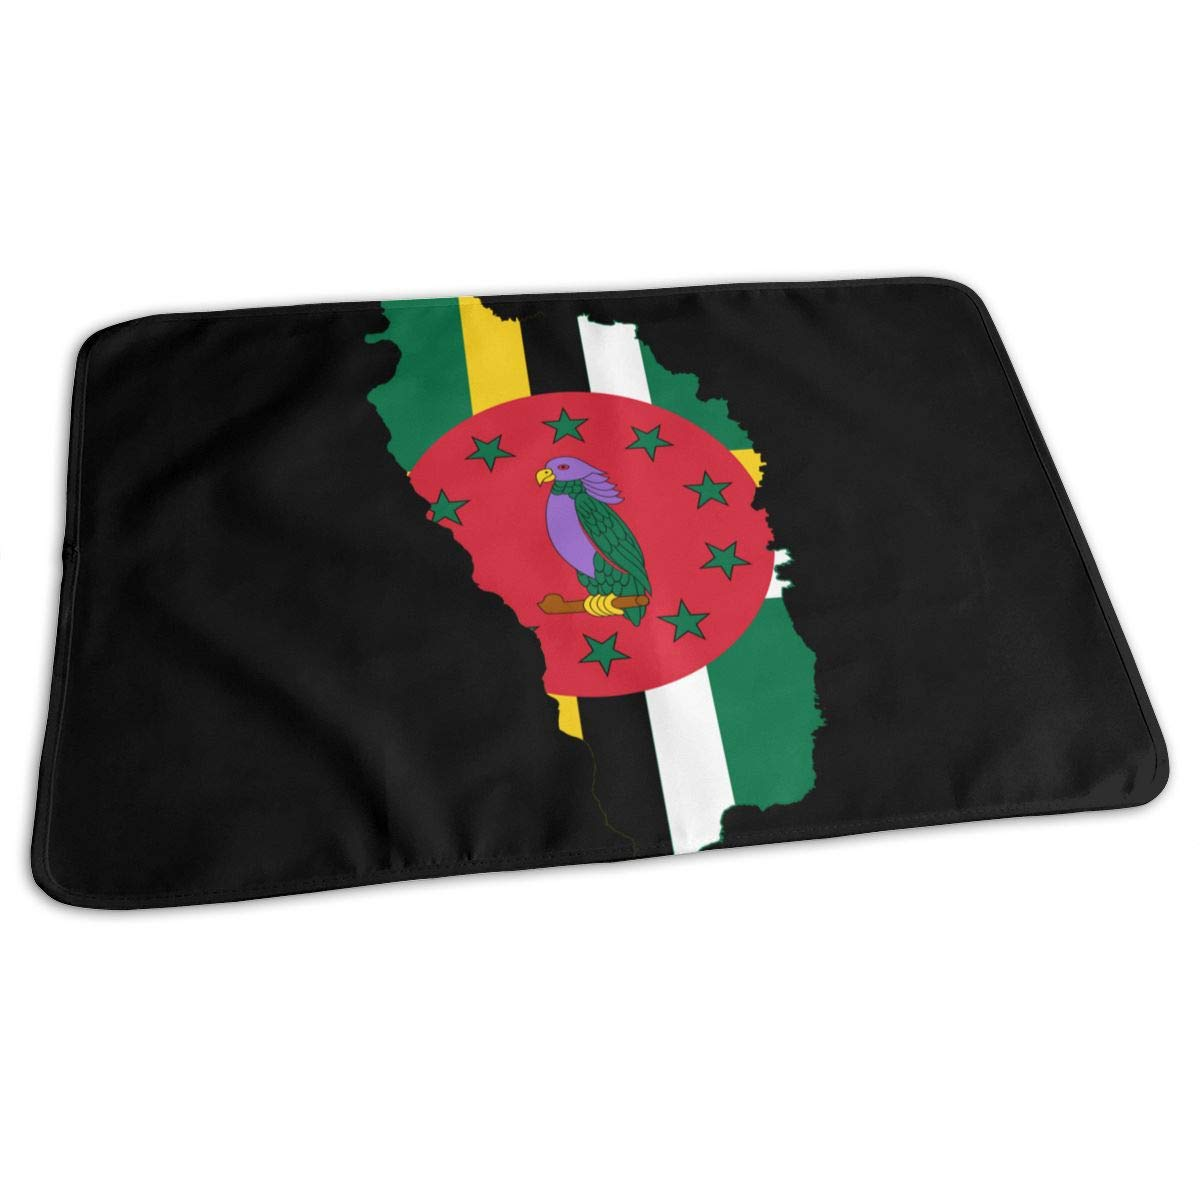 Flag of Dominica Flag Map Baby Changing Pad Waterproof Portable Changing Pad Home Travel 27.5¡±x19.7¡±